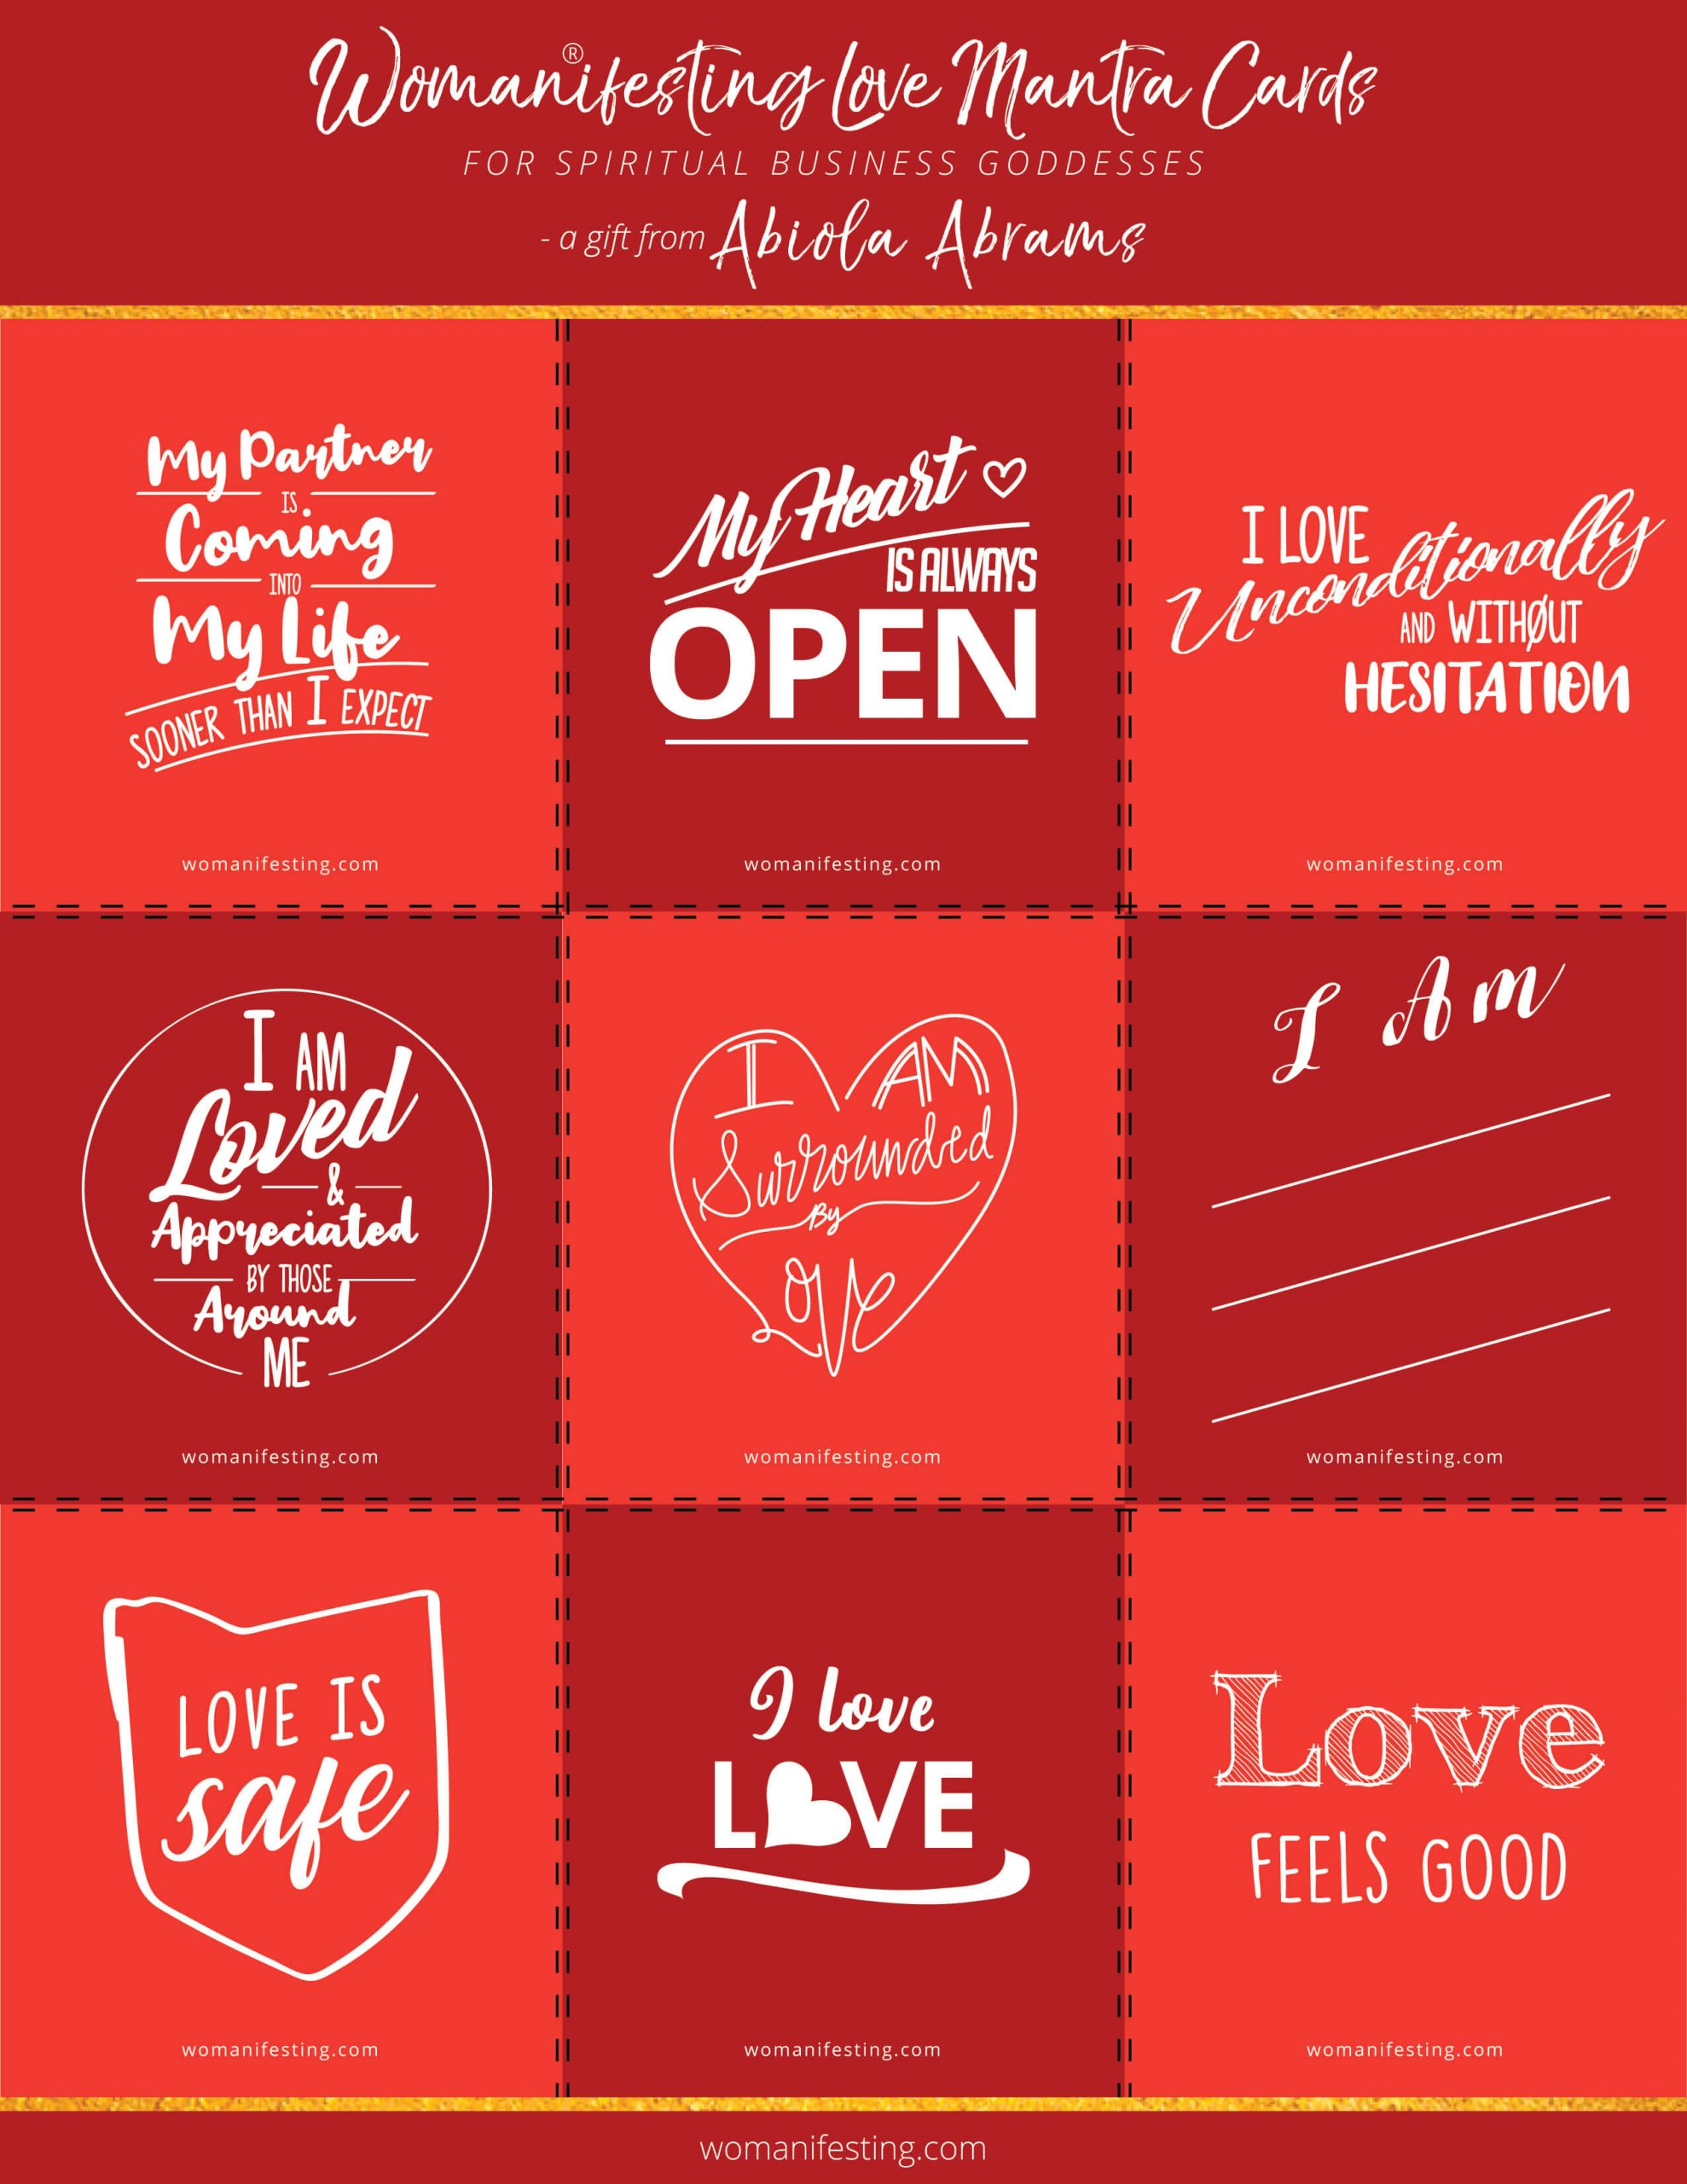 Womanifesting Love Mantra Cards